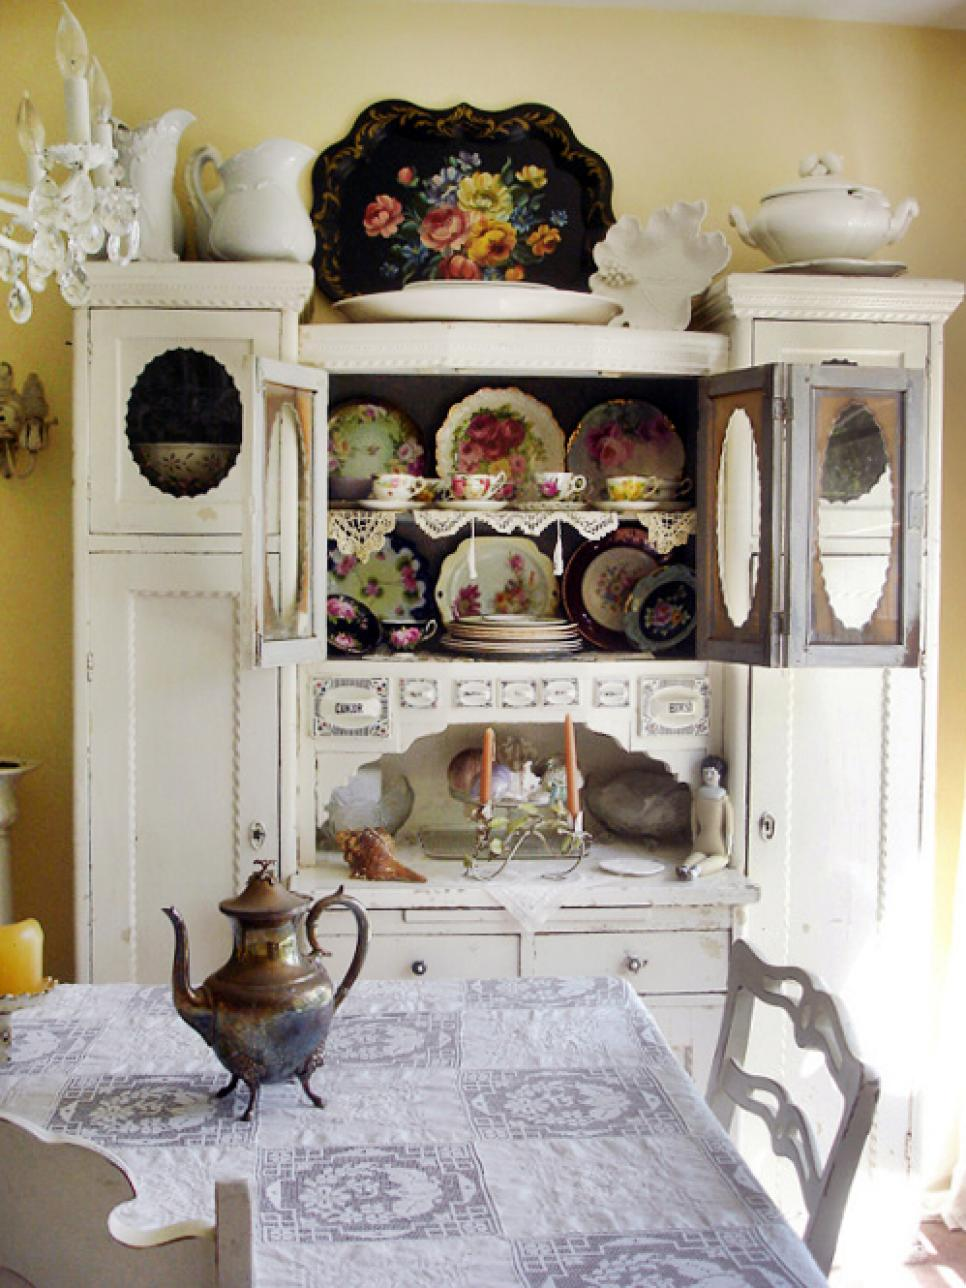 Shabby chic decor hgtv for House decor accessories